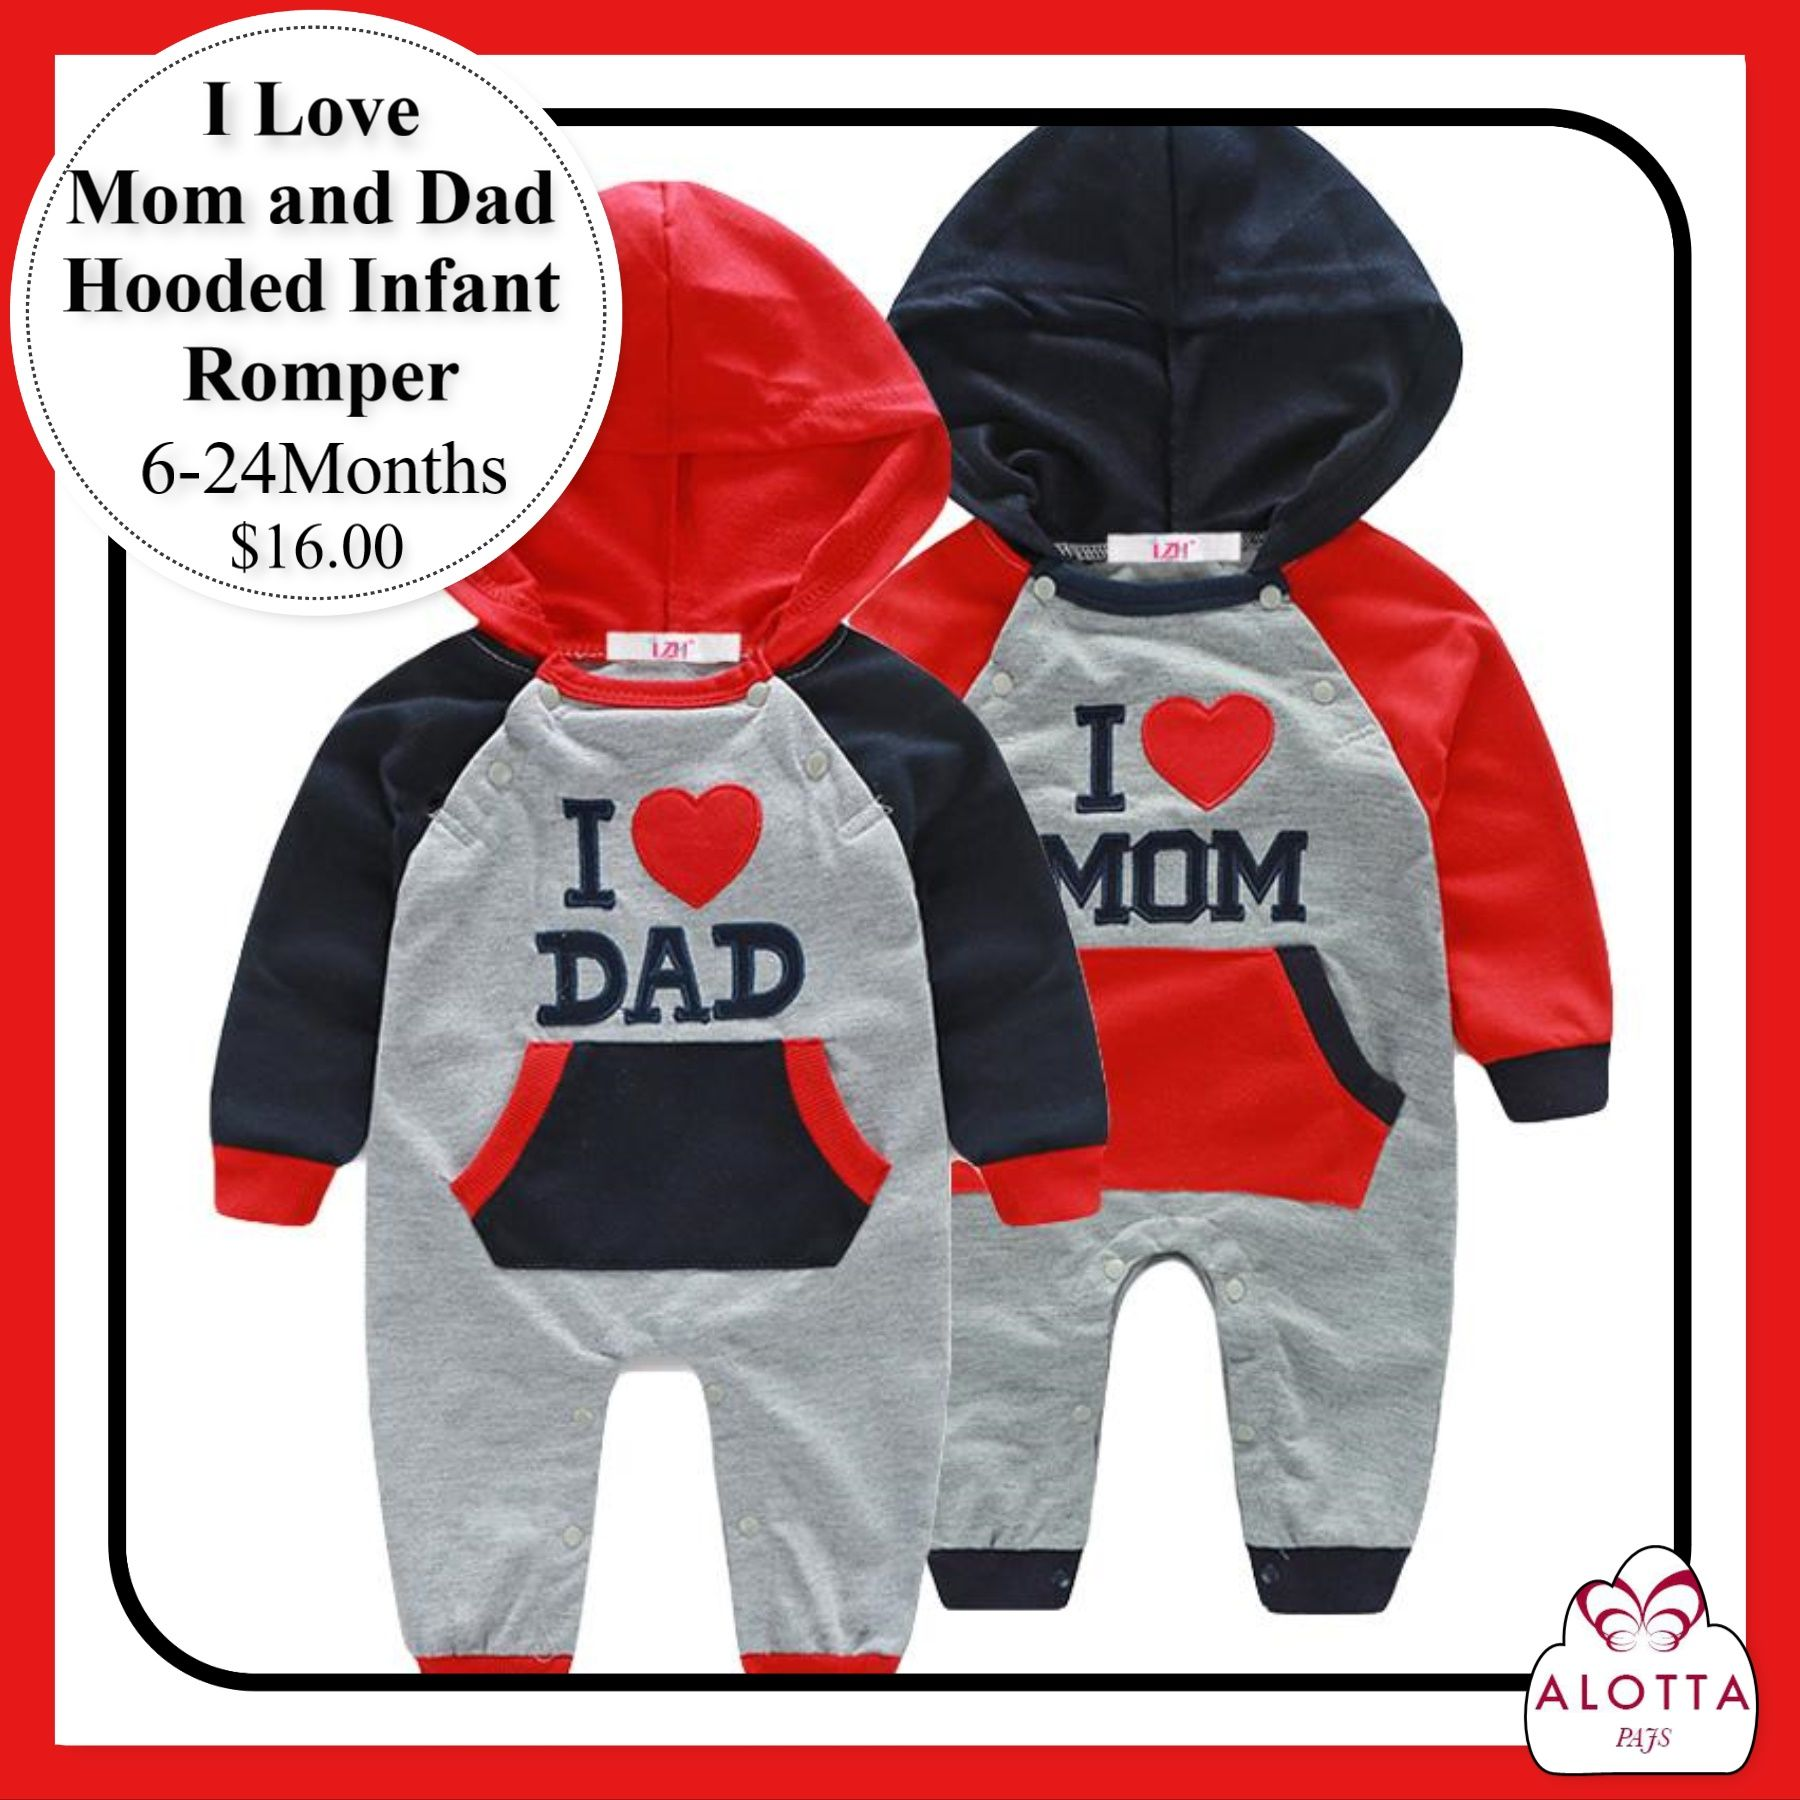 Babies Are So Adorable In Their Clothes Now They Can Say I Love You Mom Or Dad With These Cute Baby Rompers Baby Romper I Love Mom Mom And Dad